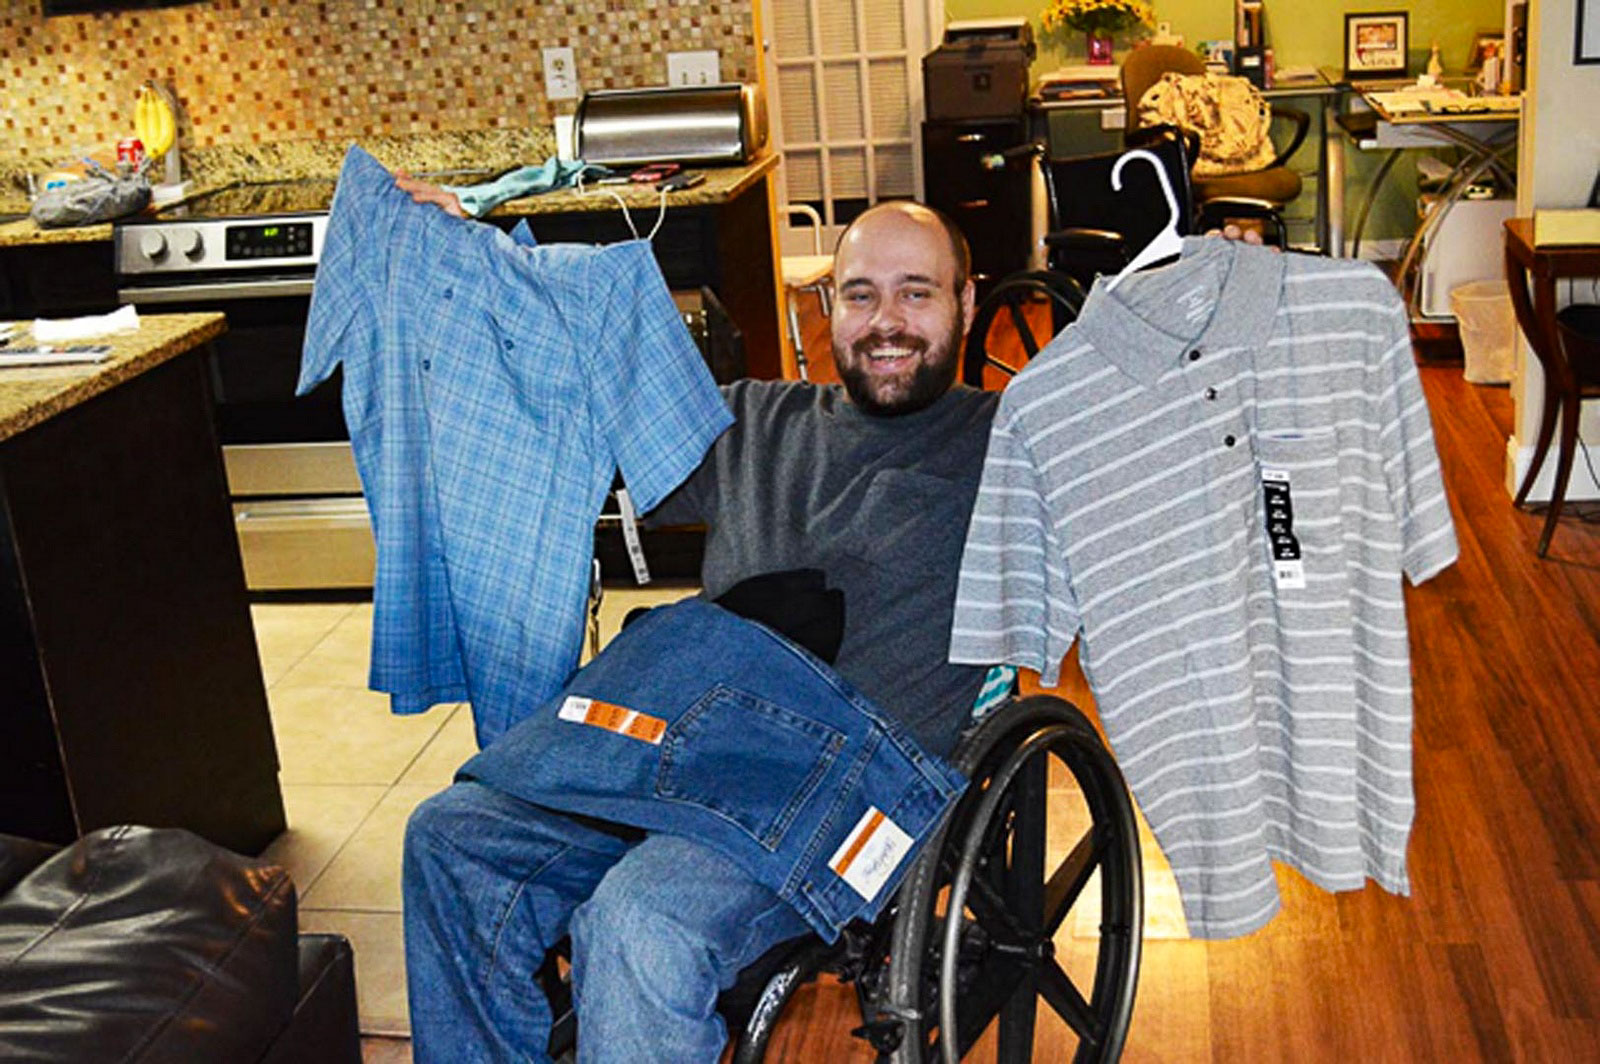 Group home resident gets new clothes.